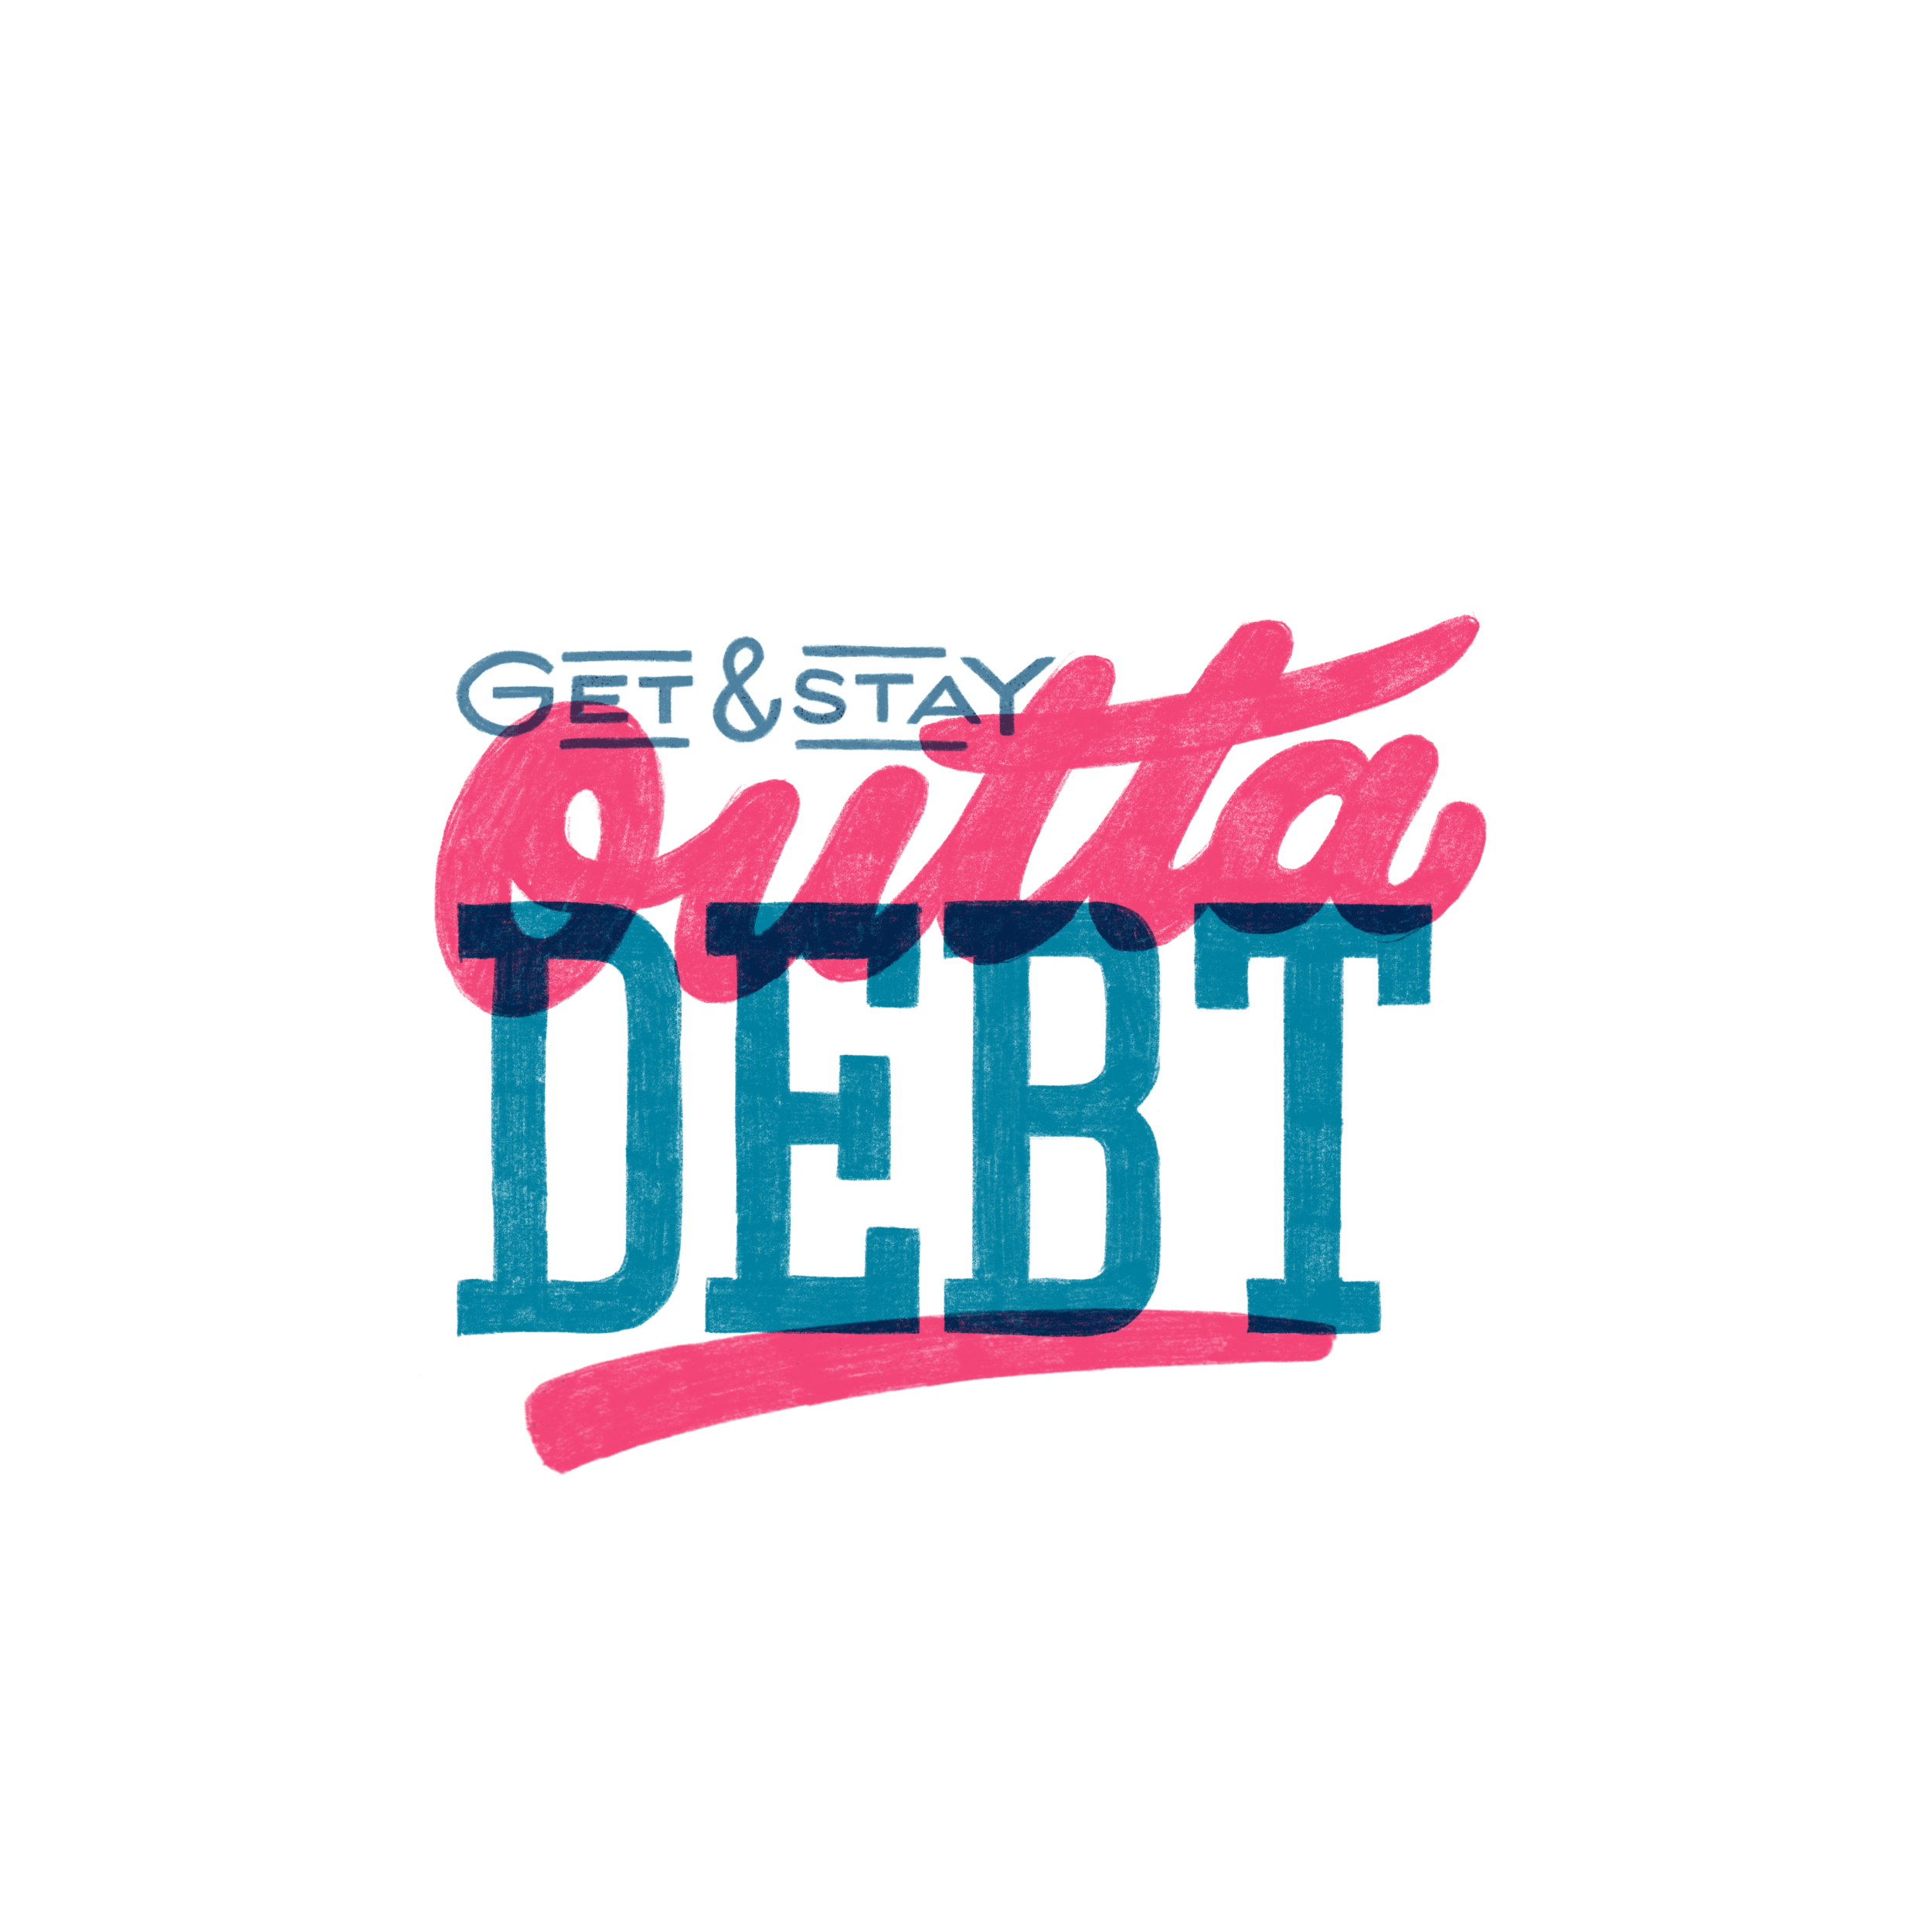 stay_outta_debt copy.png